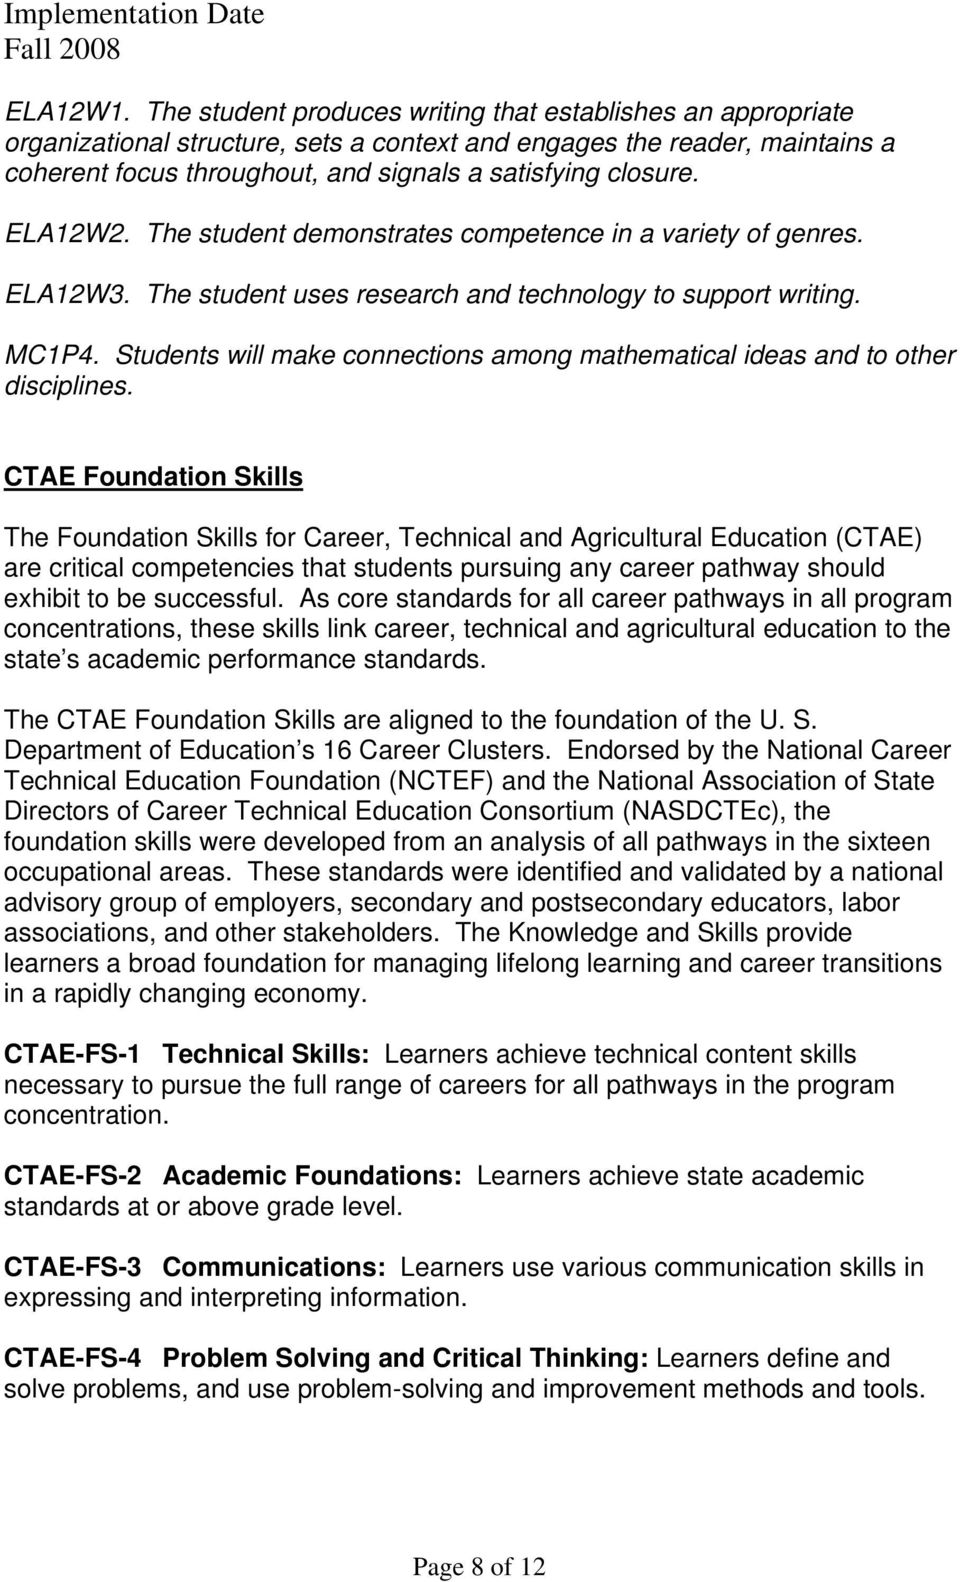 CTAE Foundation Skills The Foundation Skills for Career, Technical and Agricultural Education (CTAE) are critical competencies that students pursuing any career pathway should exhibit to be